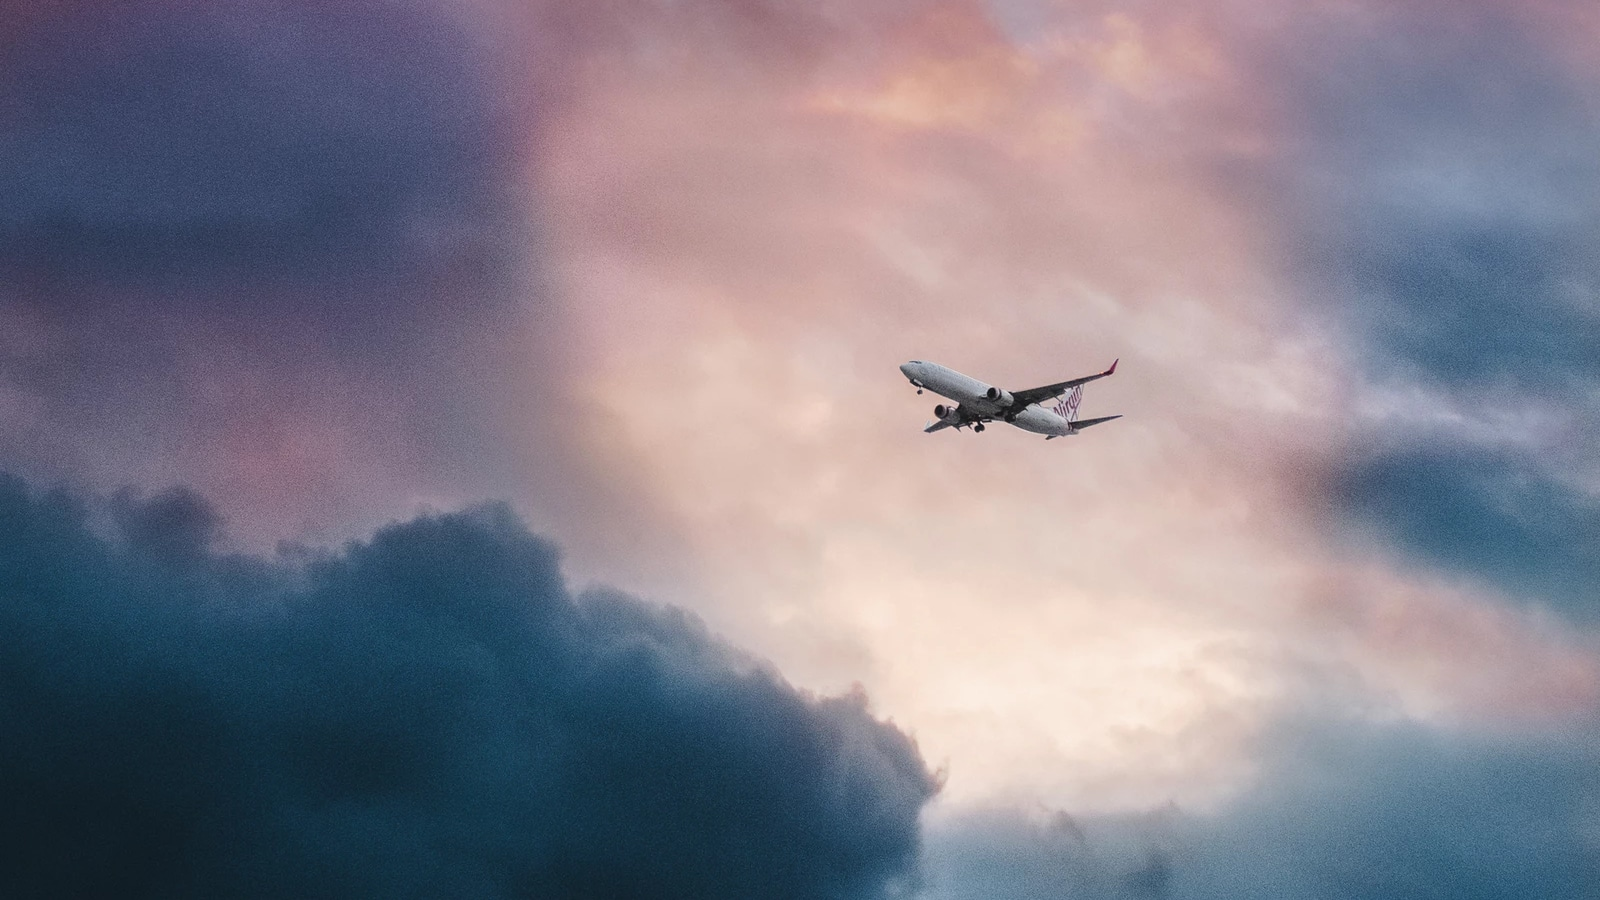 Selling Sustainability: Why an Airline Company is Telling You To Fly Less